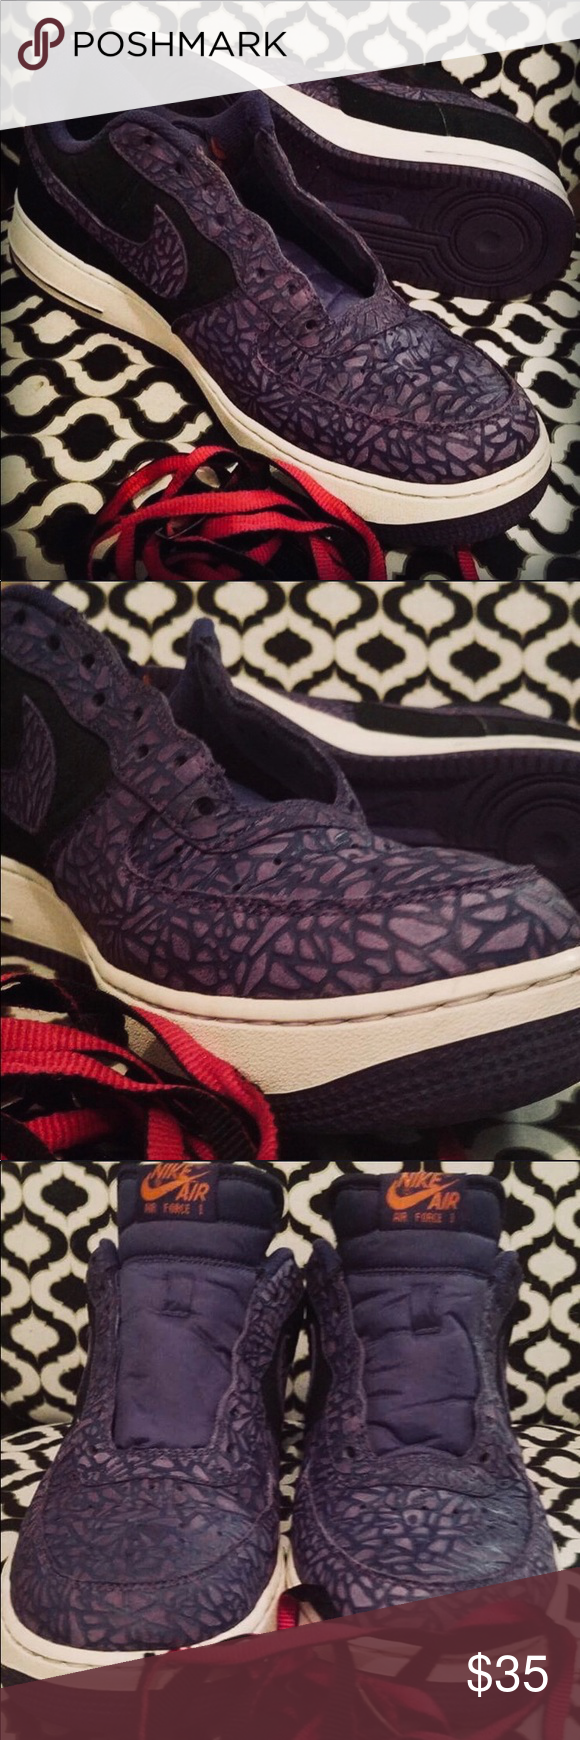 """outlet store 573b1 a0364 Used Nike Air Force 1 LE """"Godzilla Pack"""" sneakers Mens size 13US Nike Air  Force 1 LE """"Godzilla Pack"""" sneakers. Black Court Purple."""